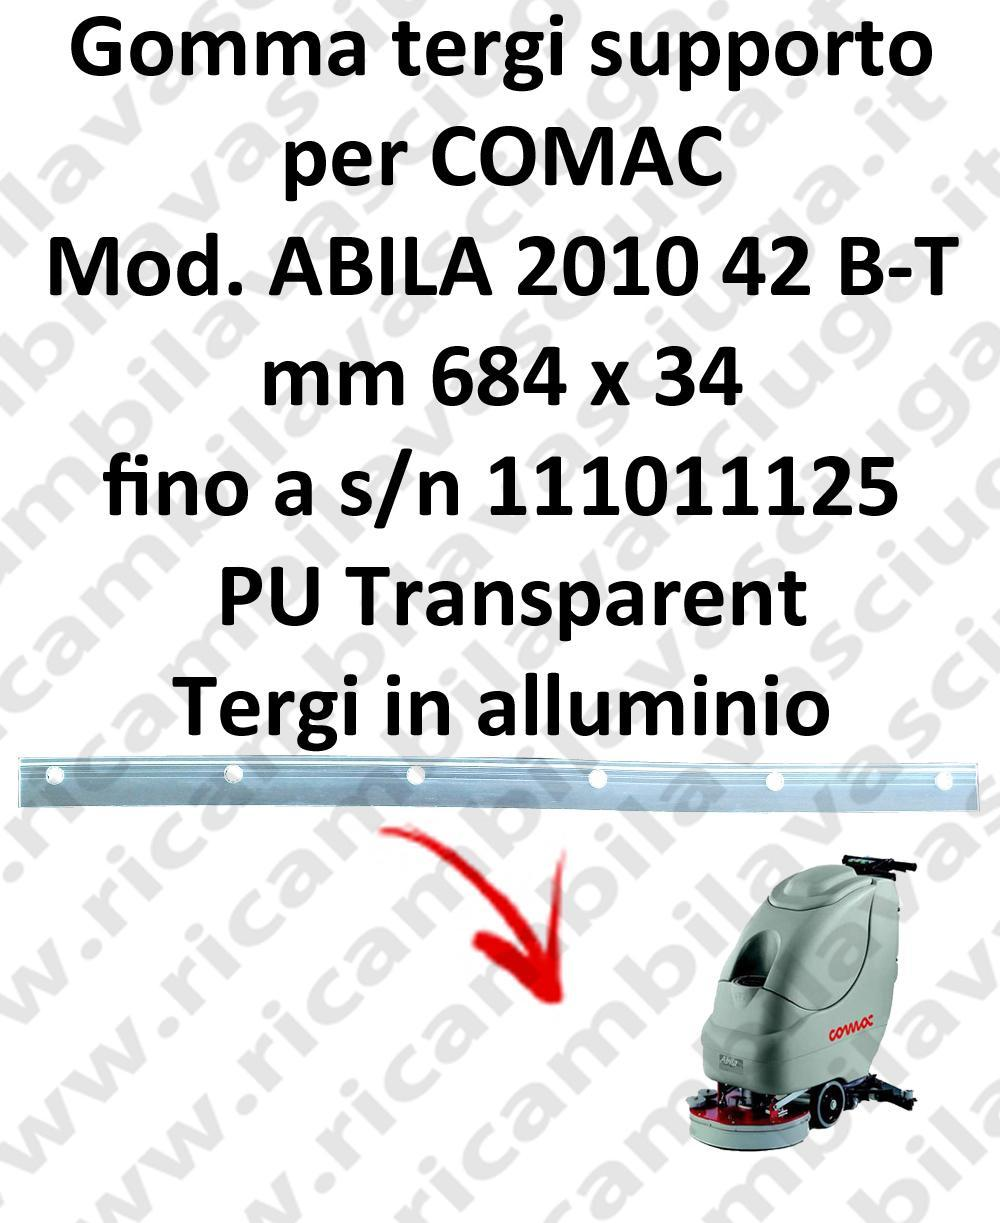 ABILA 42 B - BT till s/n 111011125 Support Squeegee rubber for COMAC accessories, reaplacement, spare parts,o scrubber dryer squeegee